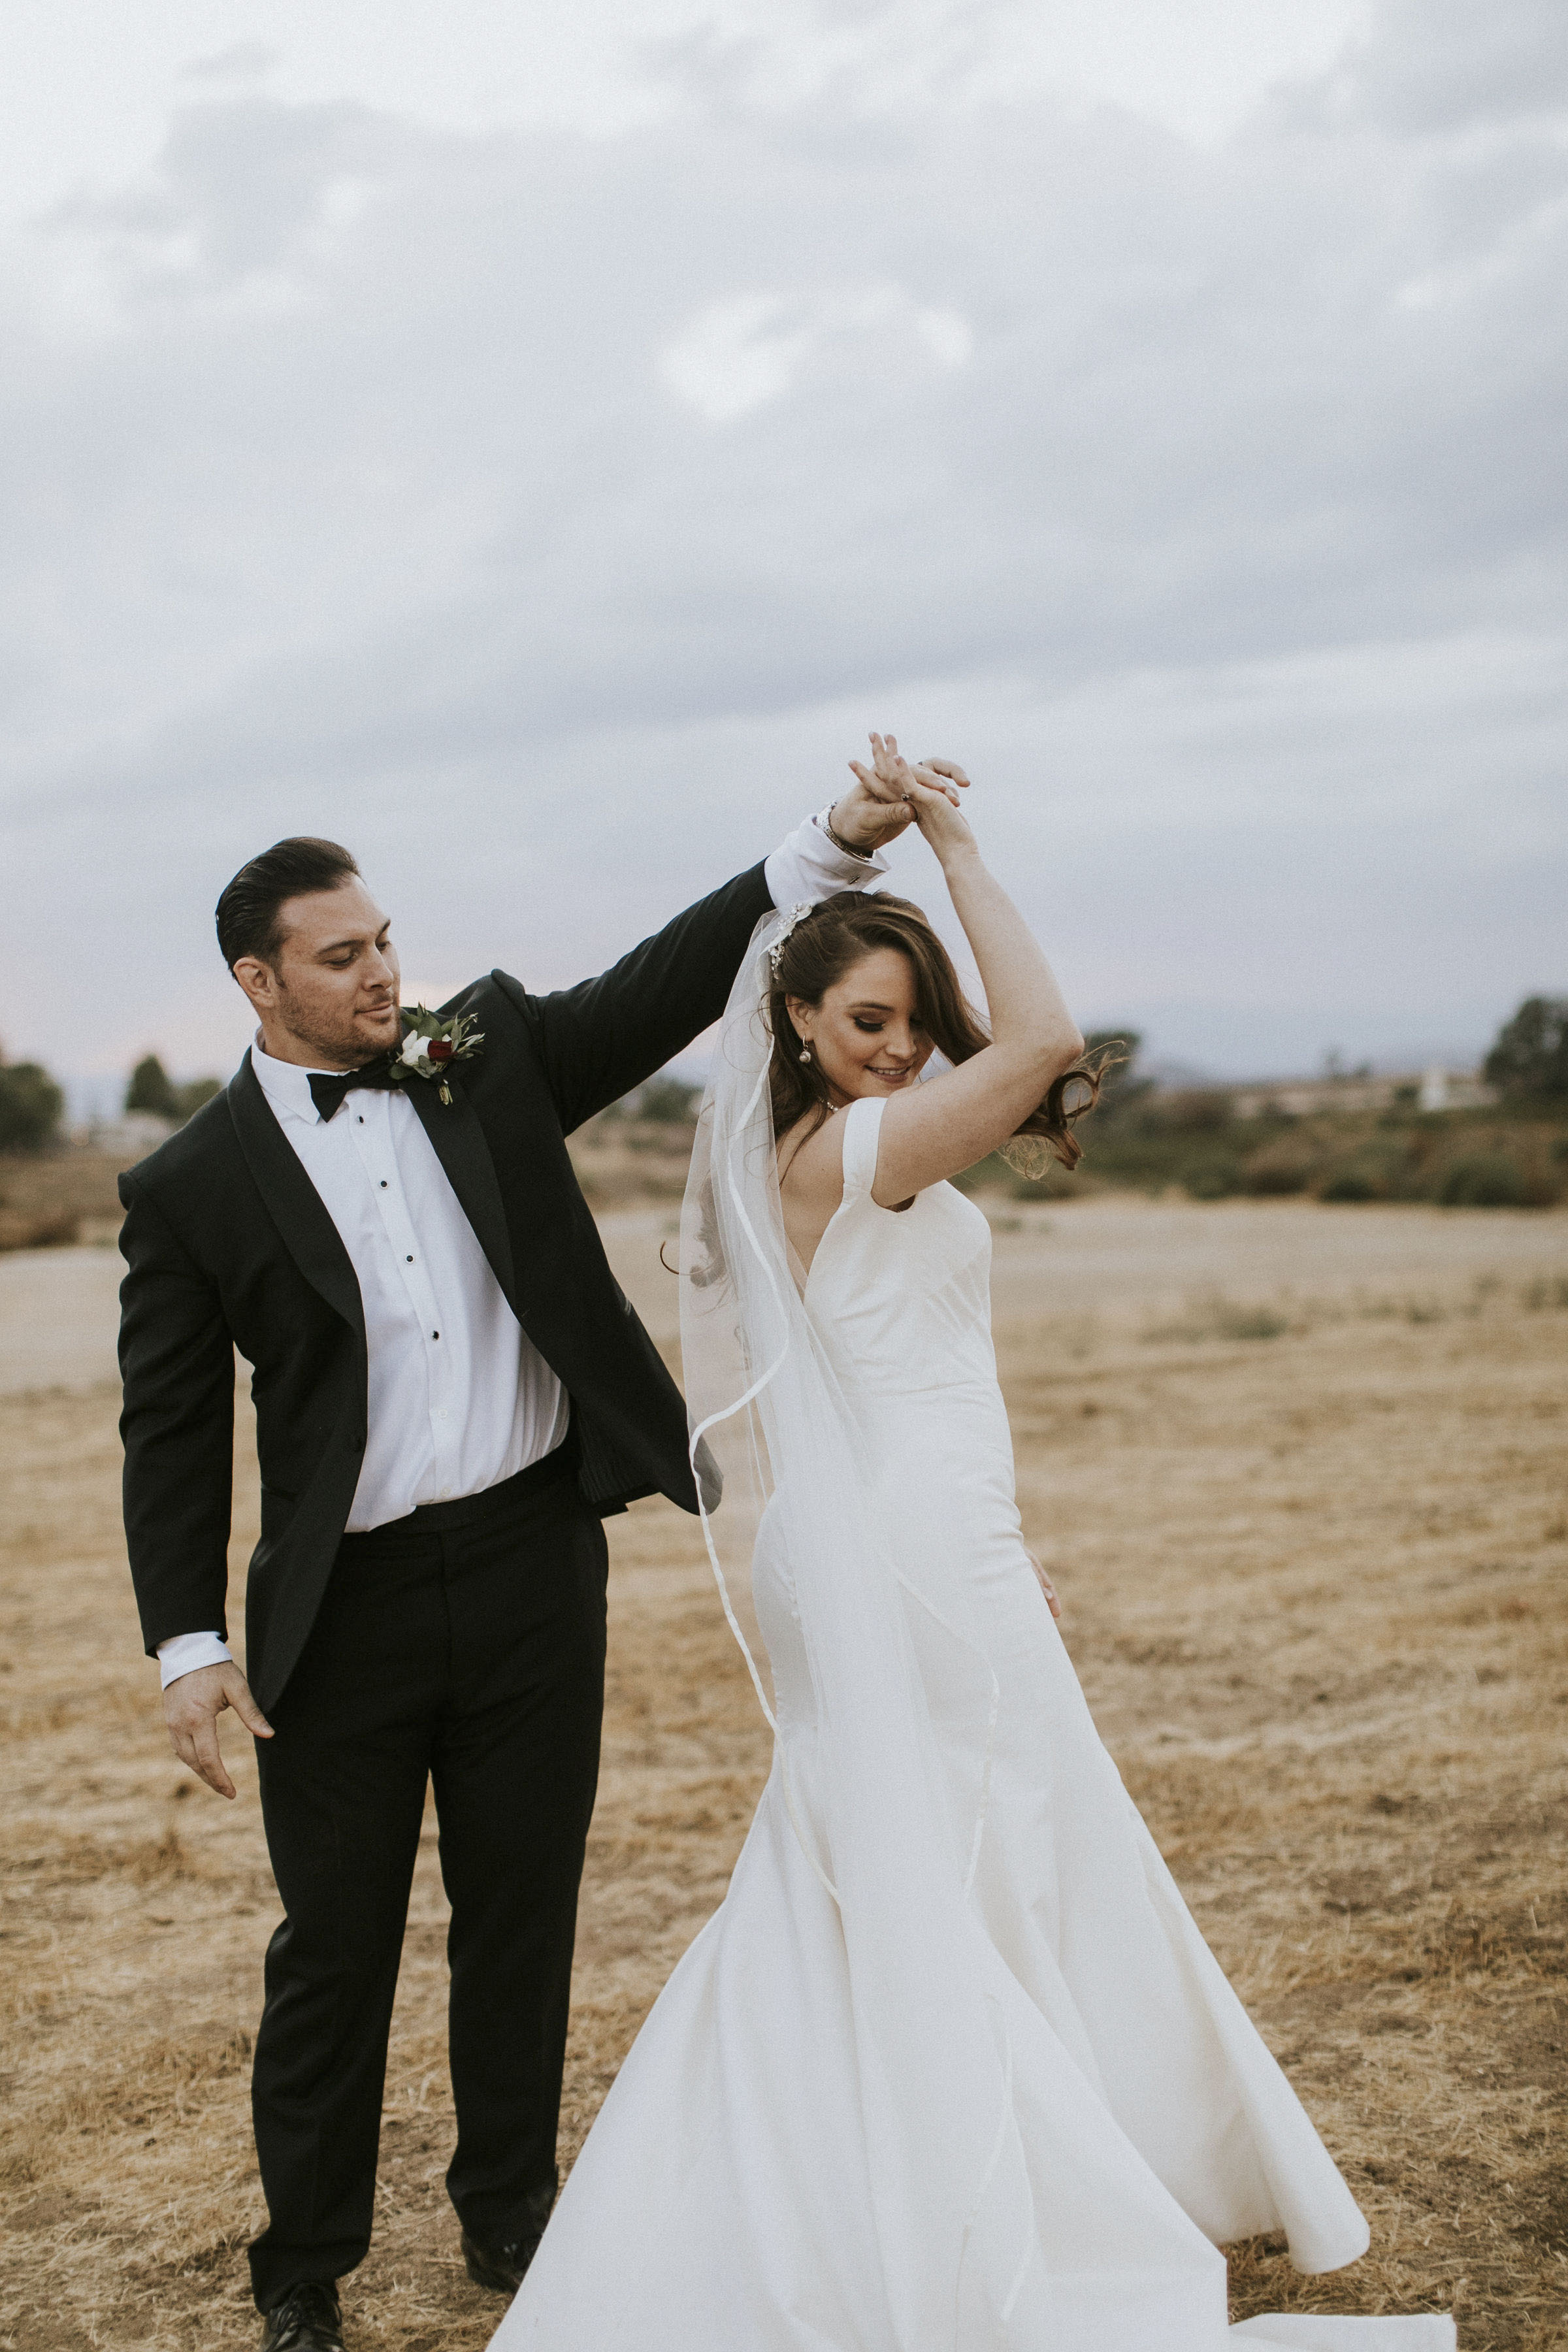 Domenica Beauty _ Hair and Makeup Artist _Wedding _ Temecula, CA _ Catherine and Darryl _ 38.JPG